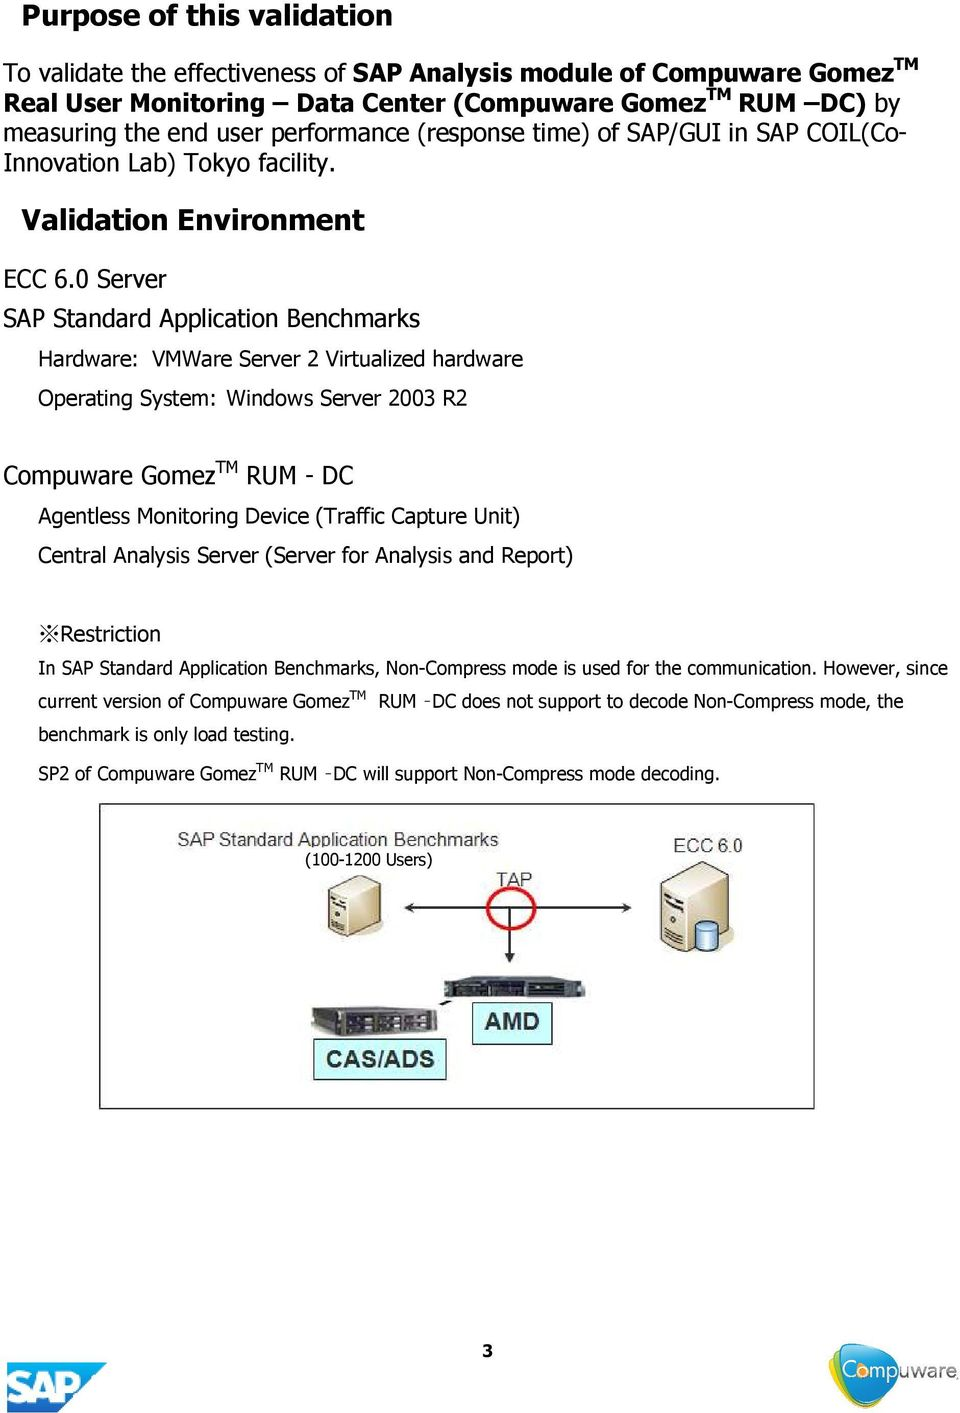 0 Server SAP Standard Application Benchmarks Hardware: VMWare Server 2 Virtualized hardware Operating System: Windows Server 2003 R2 Compuware Gomez TM RUM - DC Agentless Monitoring Device (Traffic